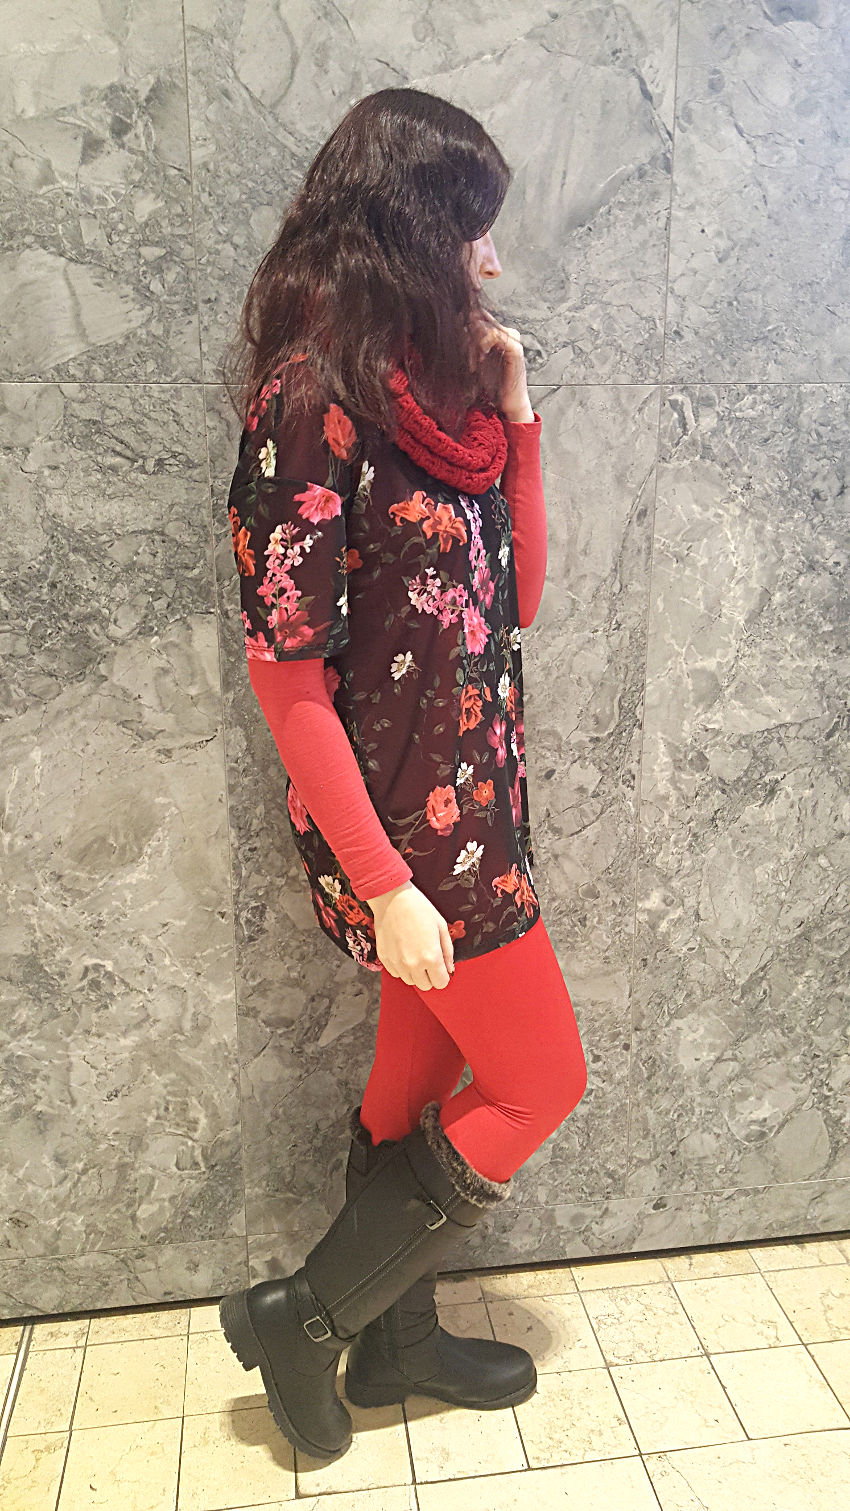 Polar Bear Style Black Floral Mesh Tunic Red Top Red Leggings Red Knit Scarf Black Boots